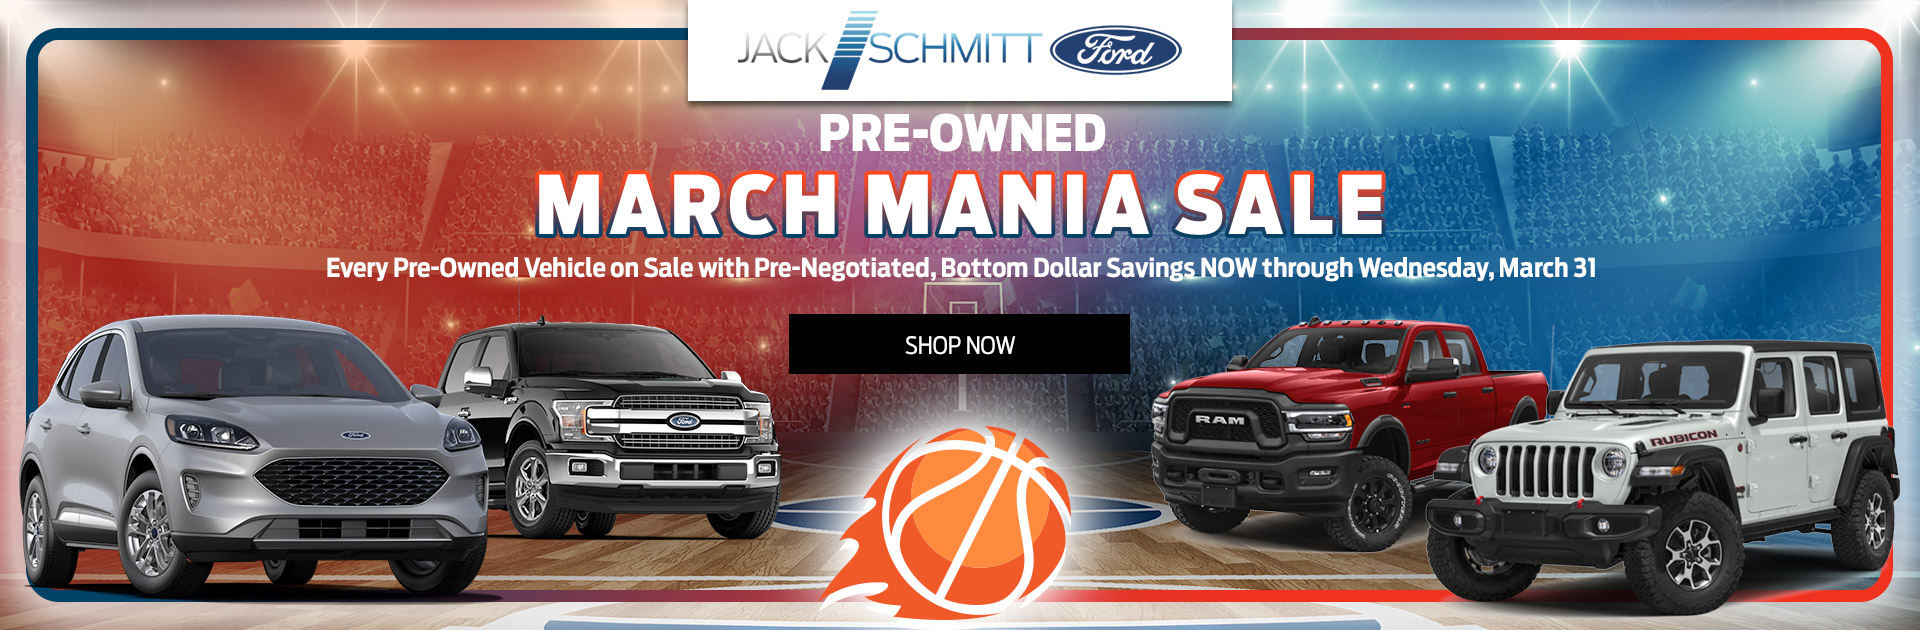 March Mainia Preowned Sale